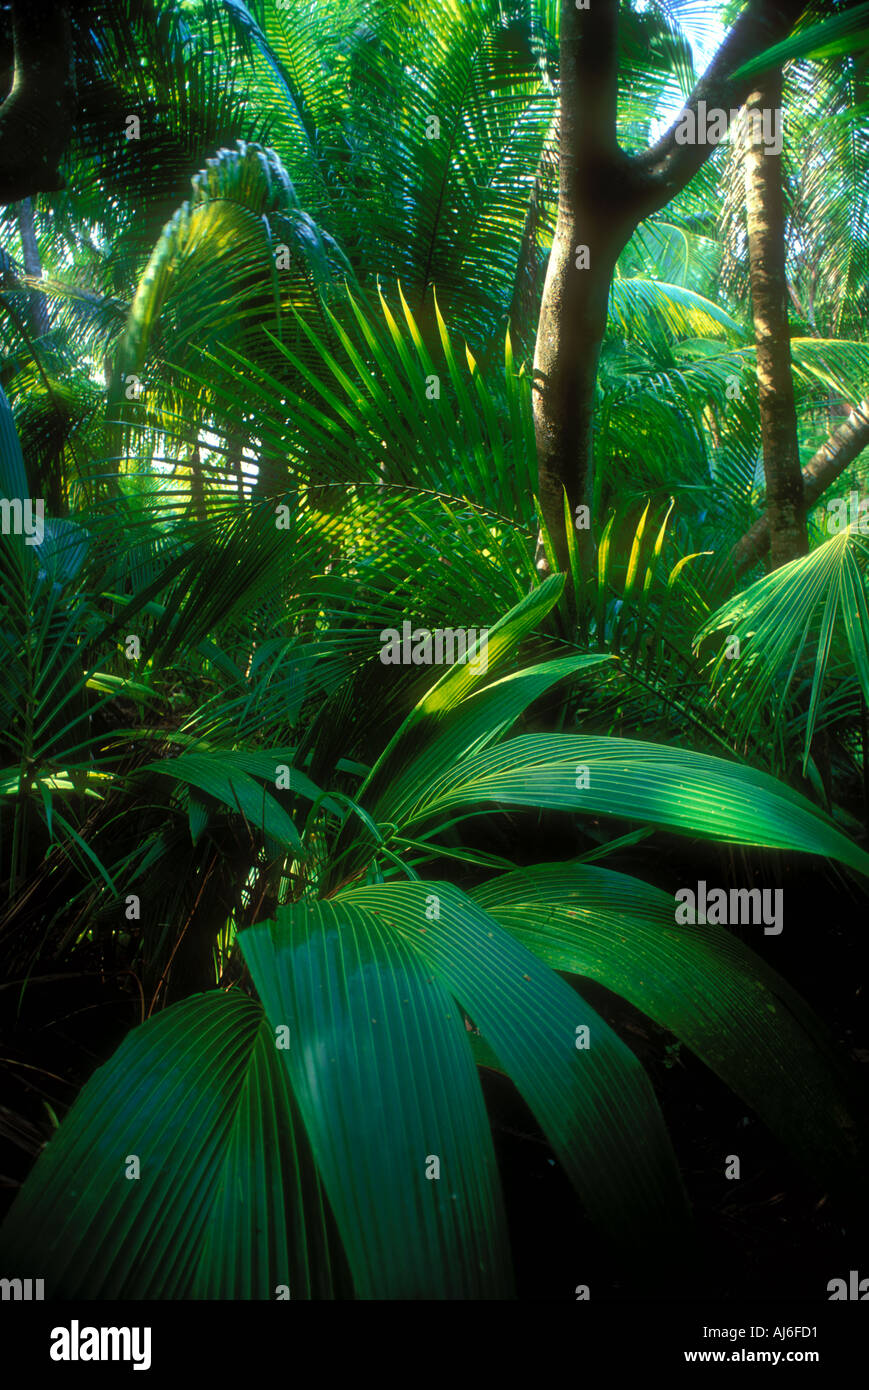 Dense tropical foliage and vegetation in Belize Caribbean Property Released Image - Stock Image